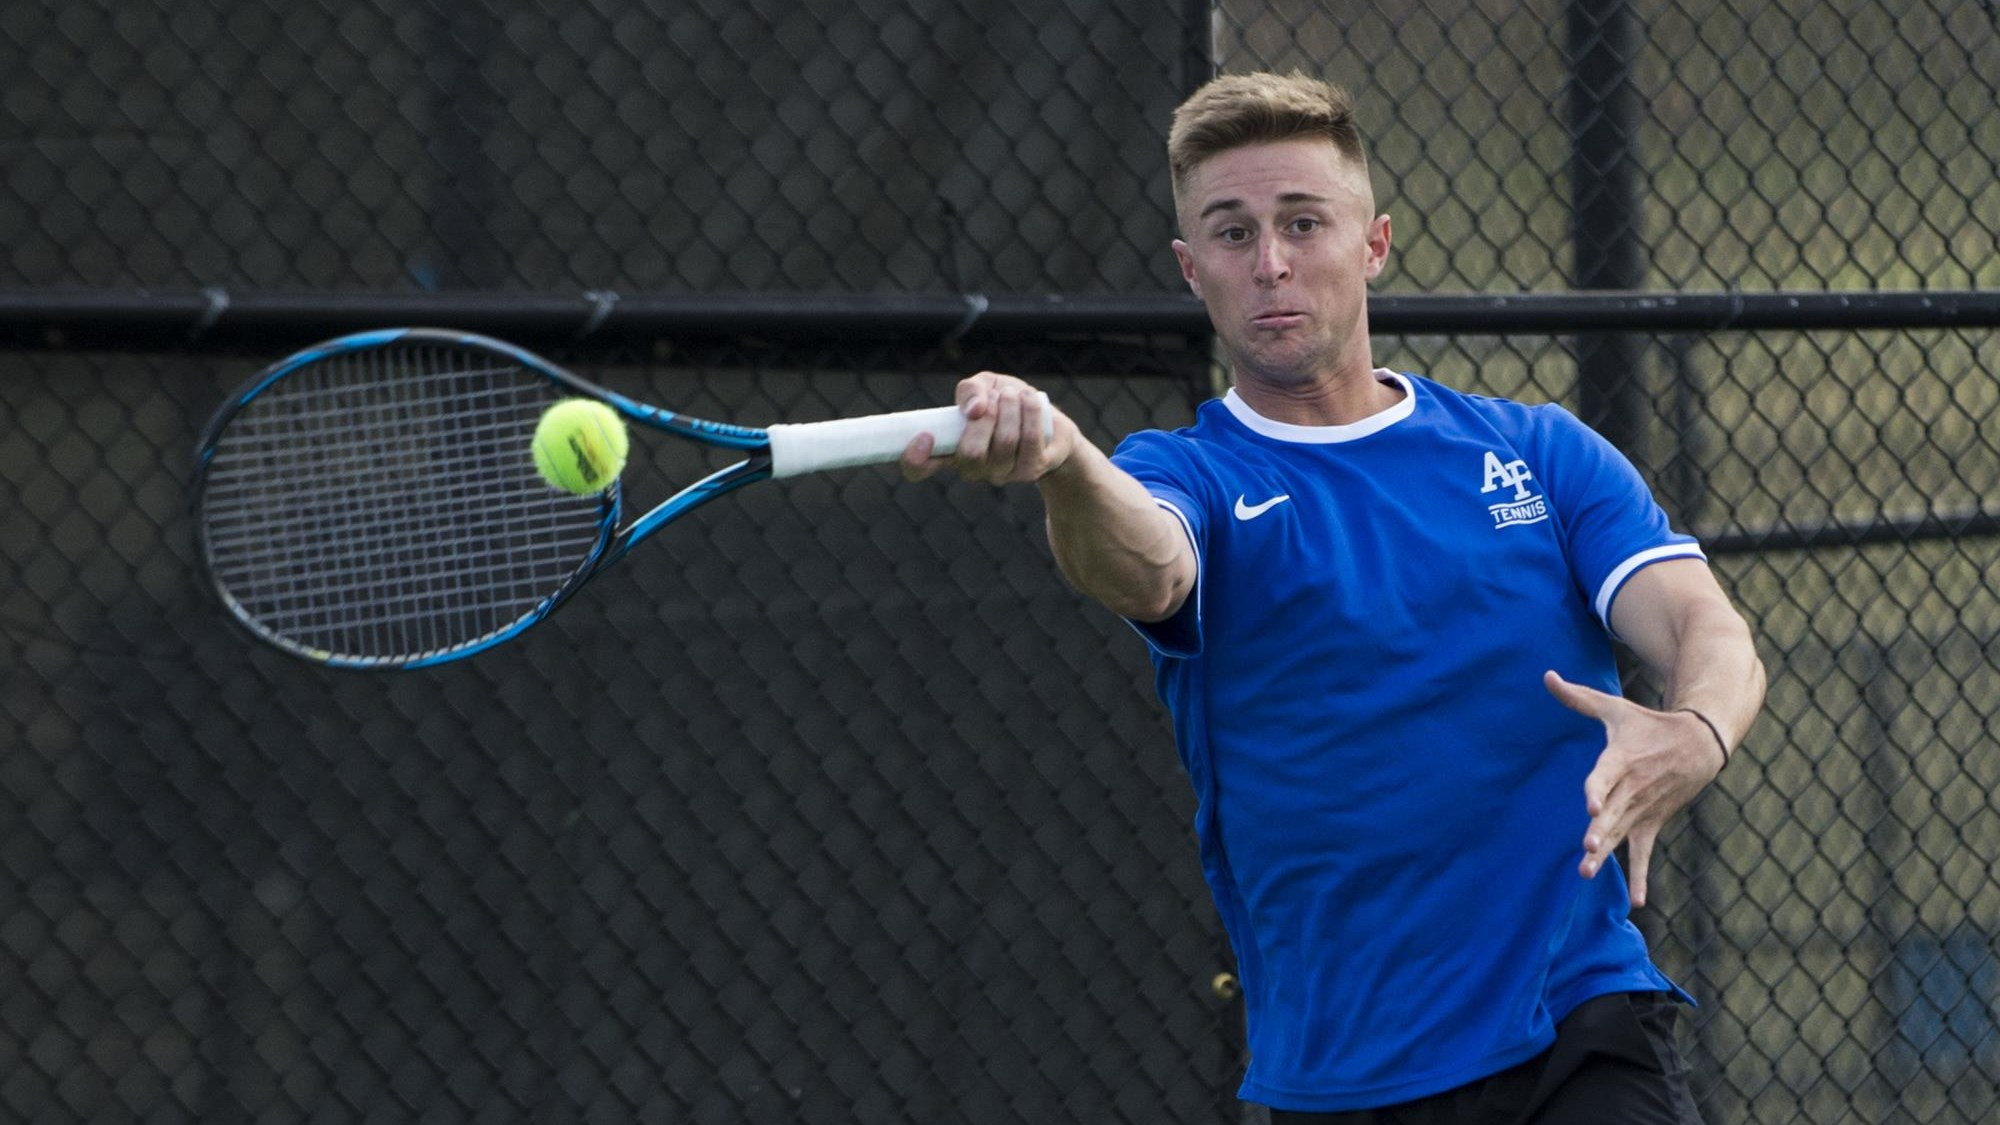 Air Force Men's Tennis Completes Day Two Of ITA Bedford Cup